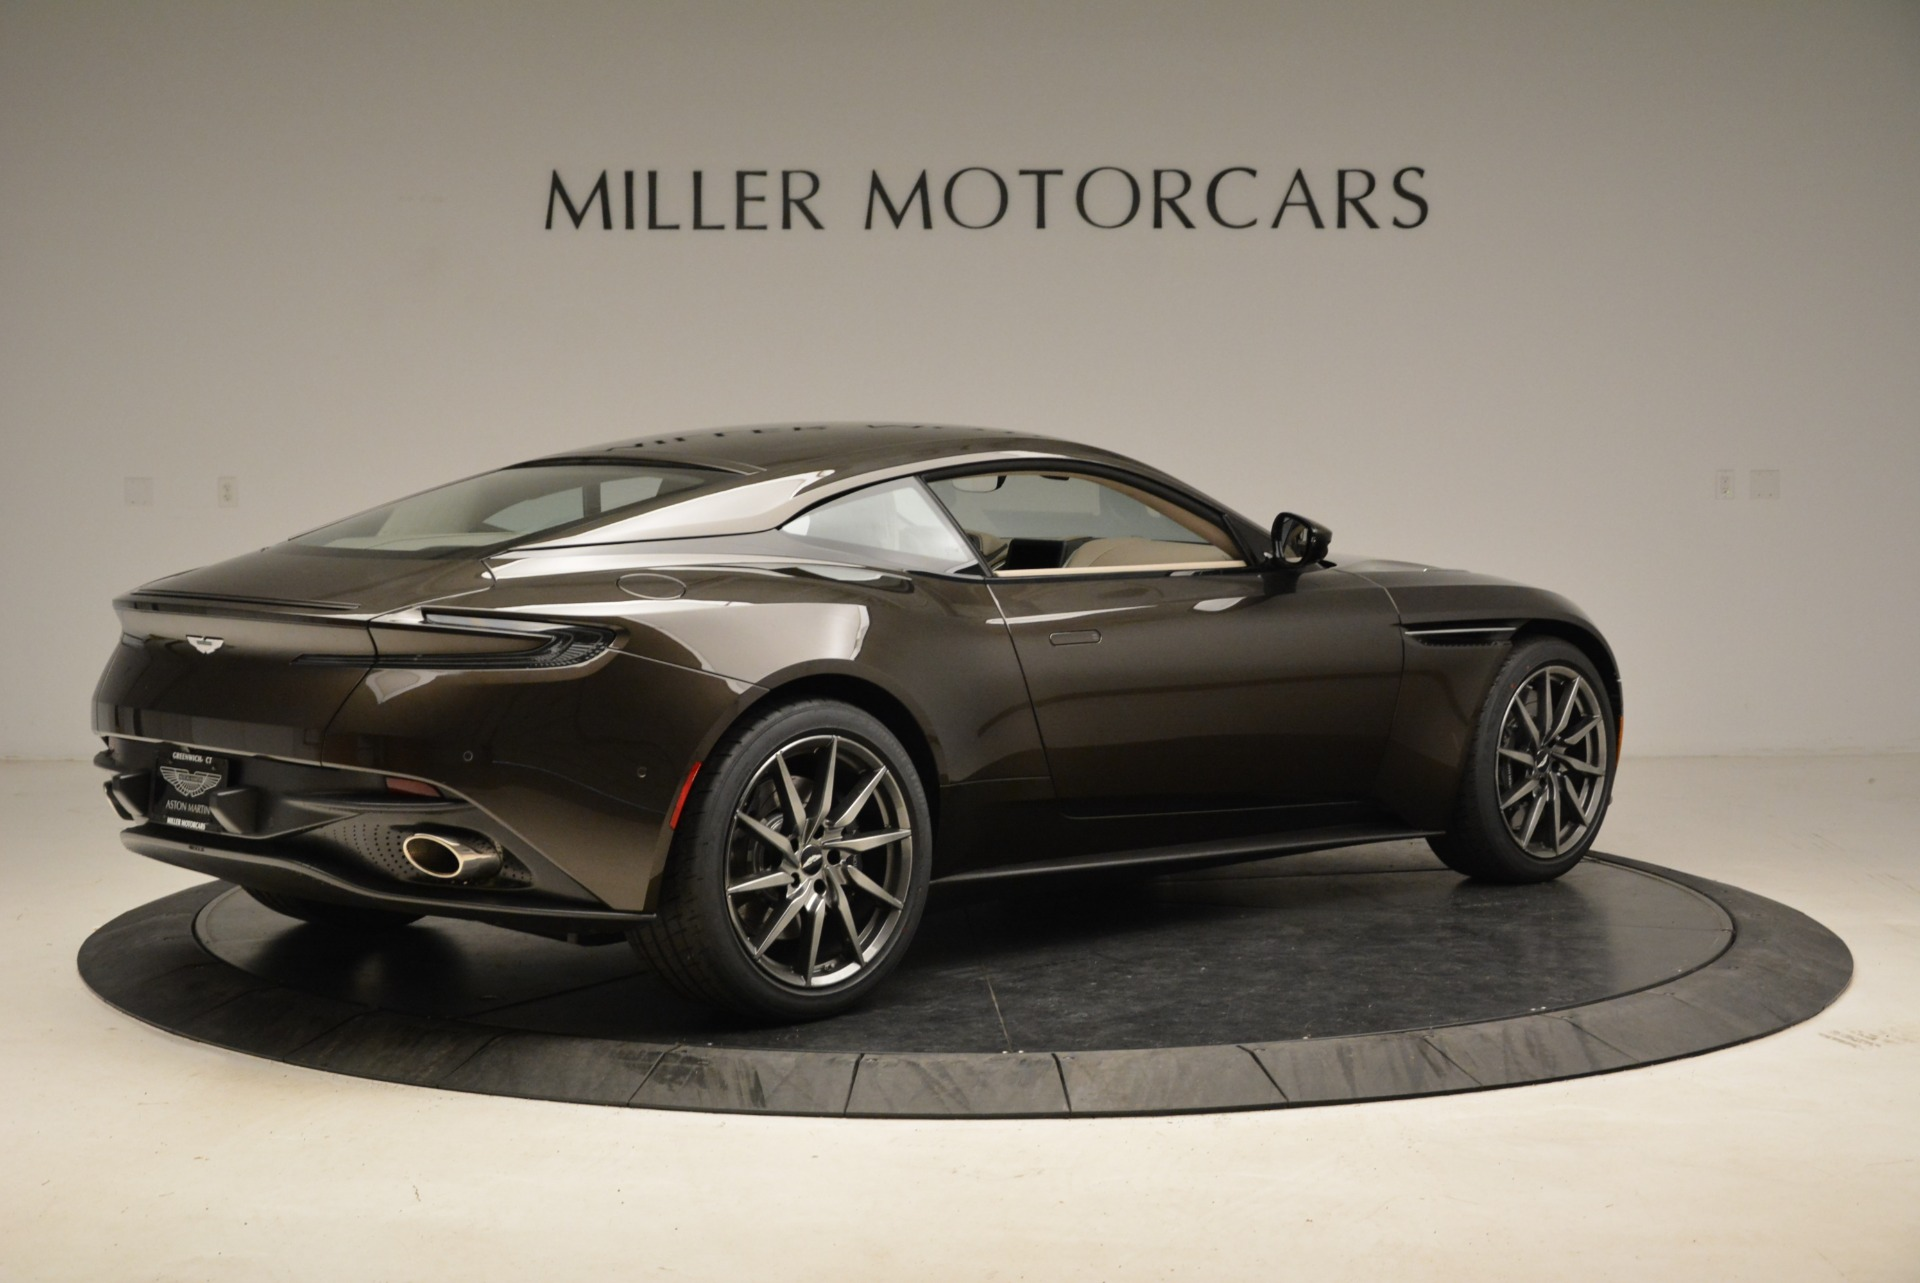 New 2018 Aston Martin DB11 V12 For Sale In Westport, CT 1904_p8